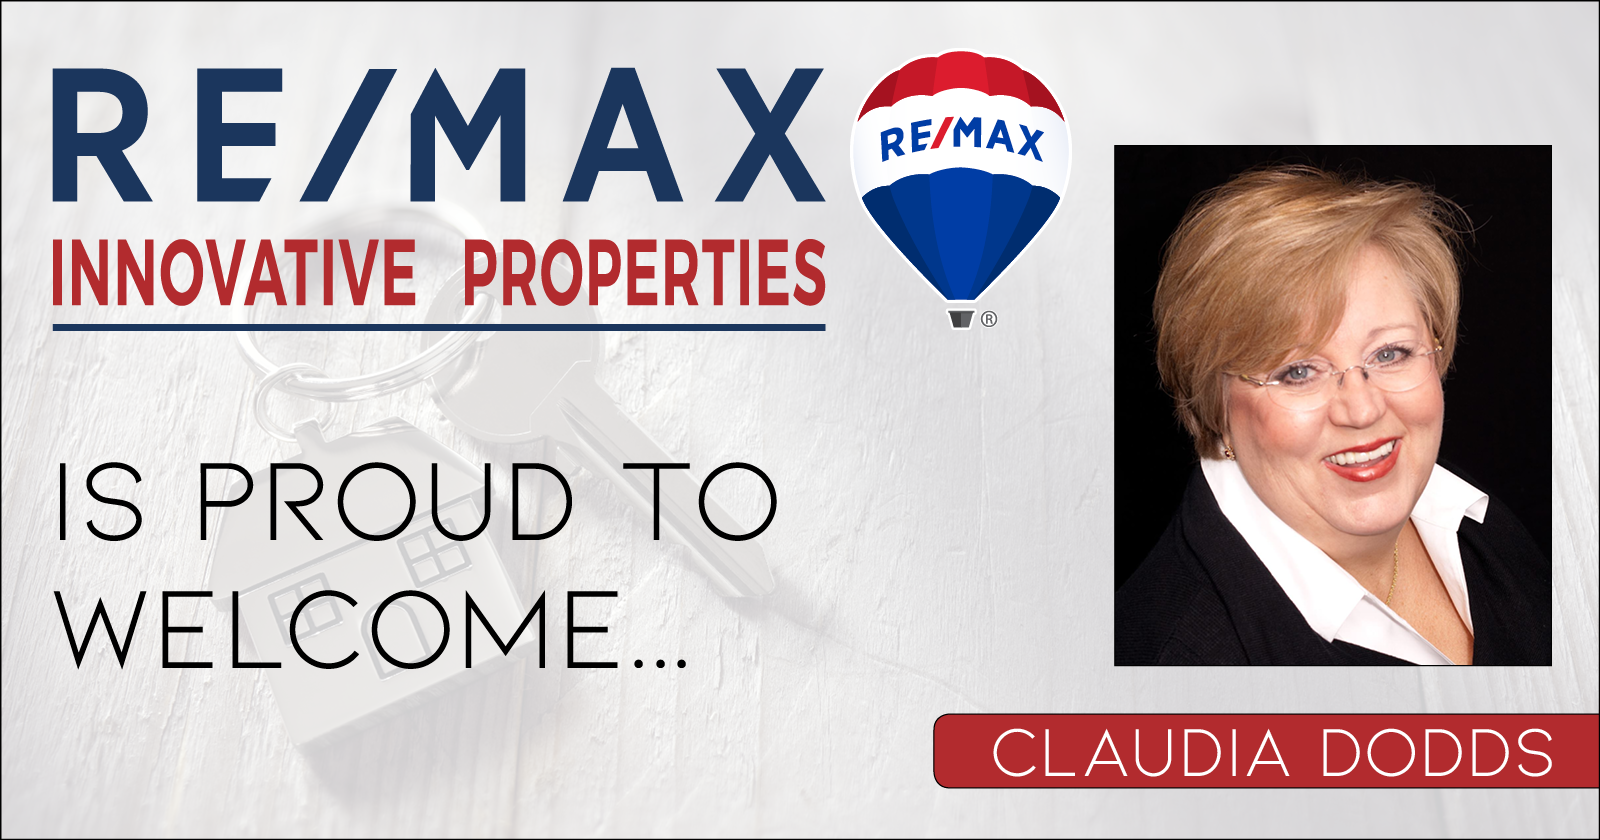 RE/MAX Innovative Properties is Proud to Welcome Claudia Dodds